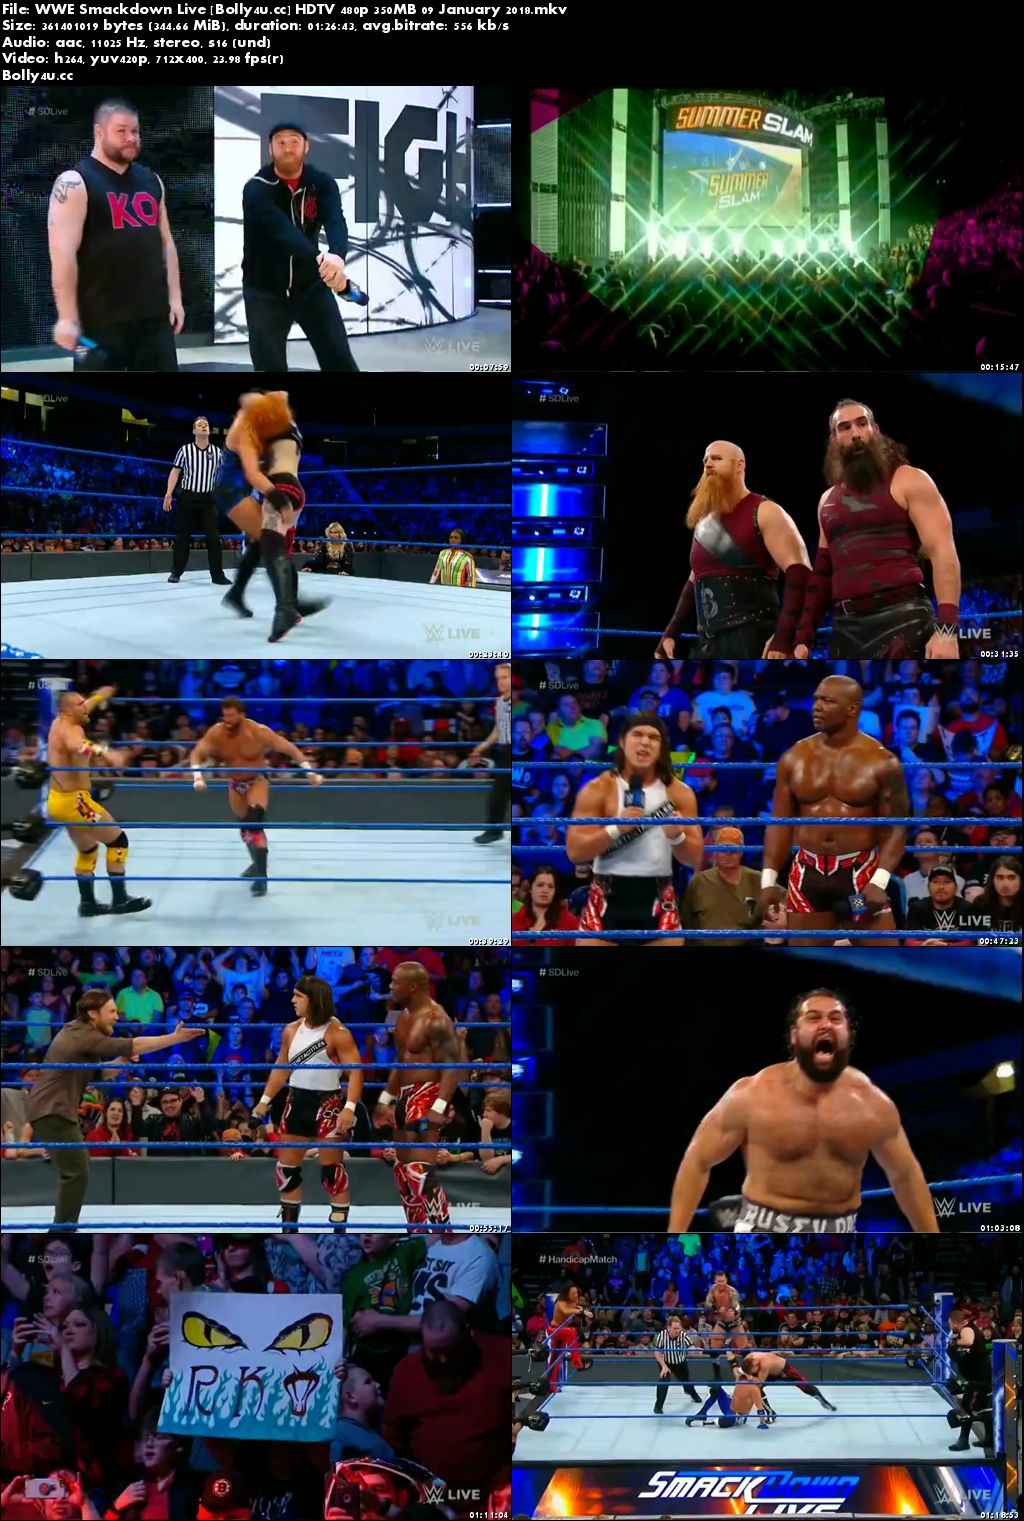 WWE Smackdown Live HDTV 480p 350MB 09 January 2018